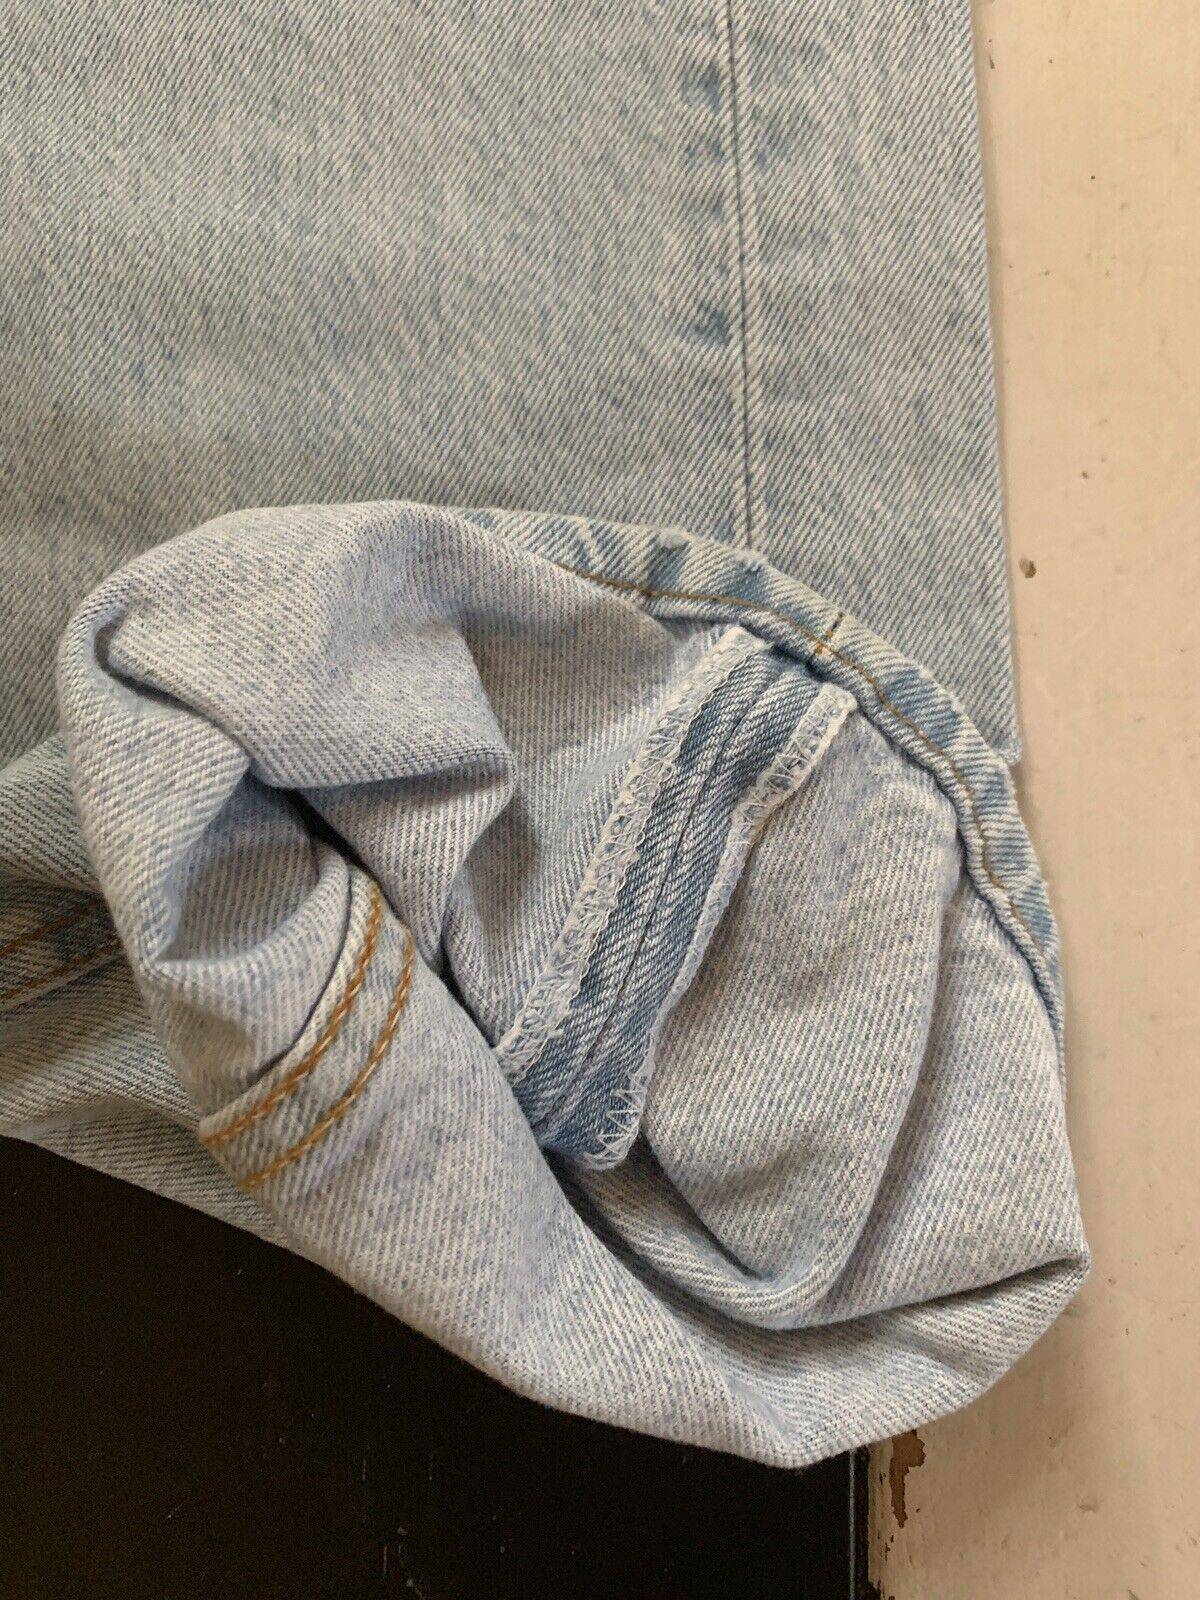 Levis Vintage 501 Made In USA - image 7